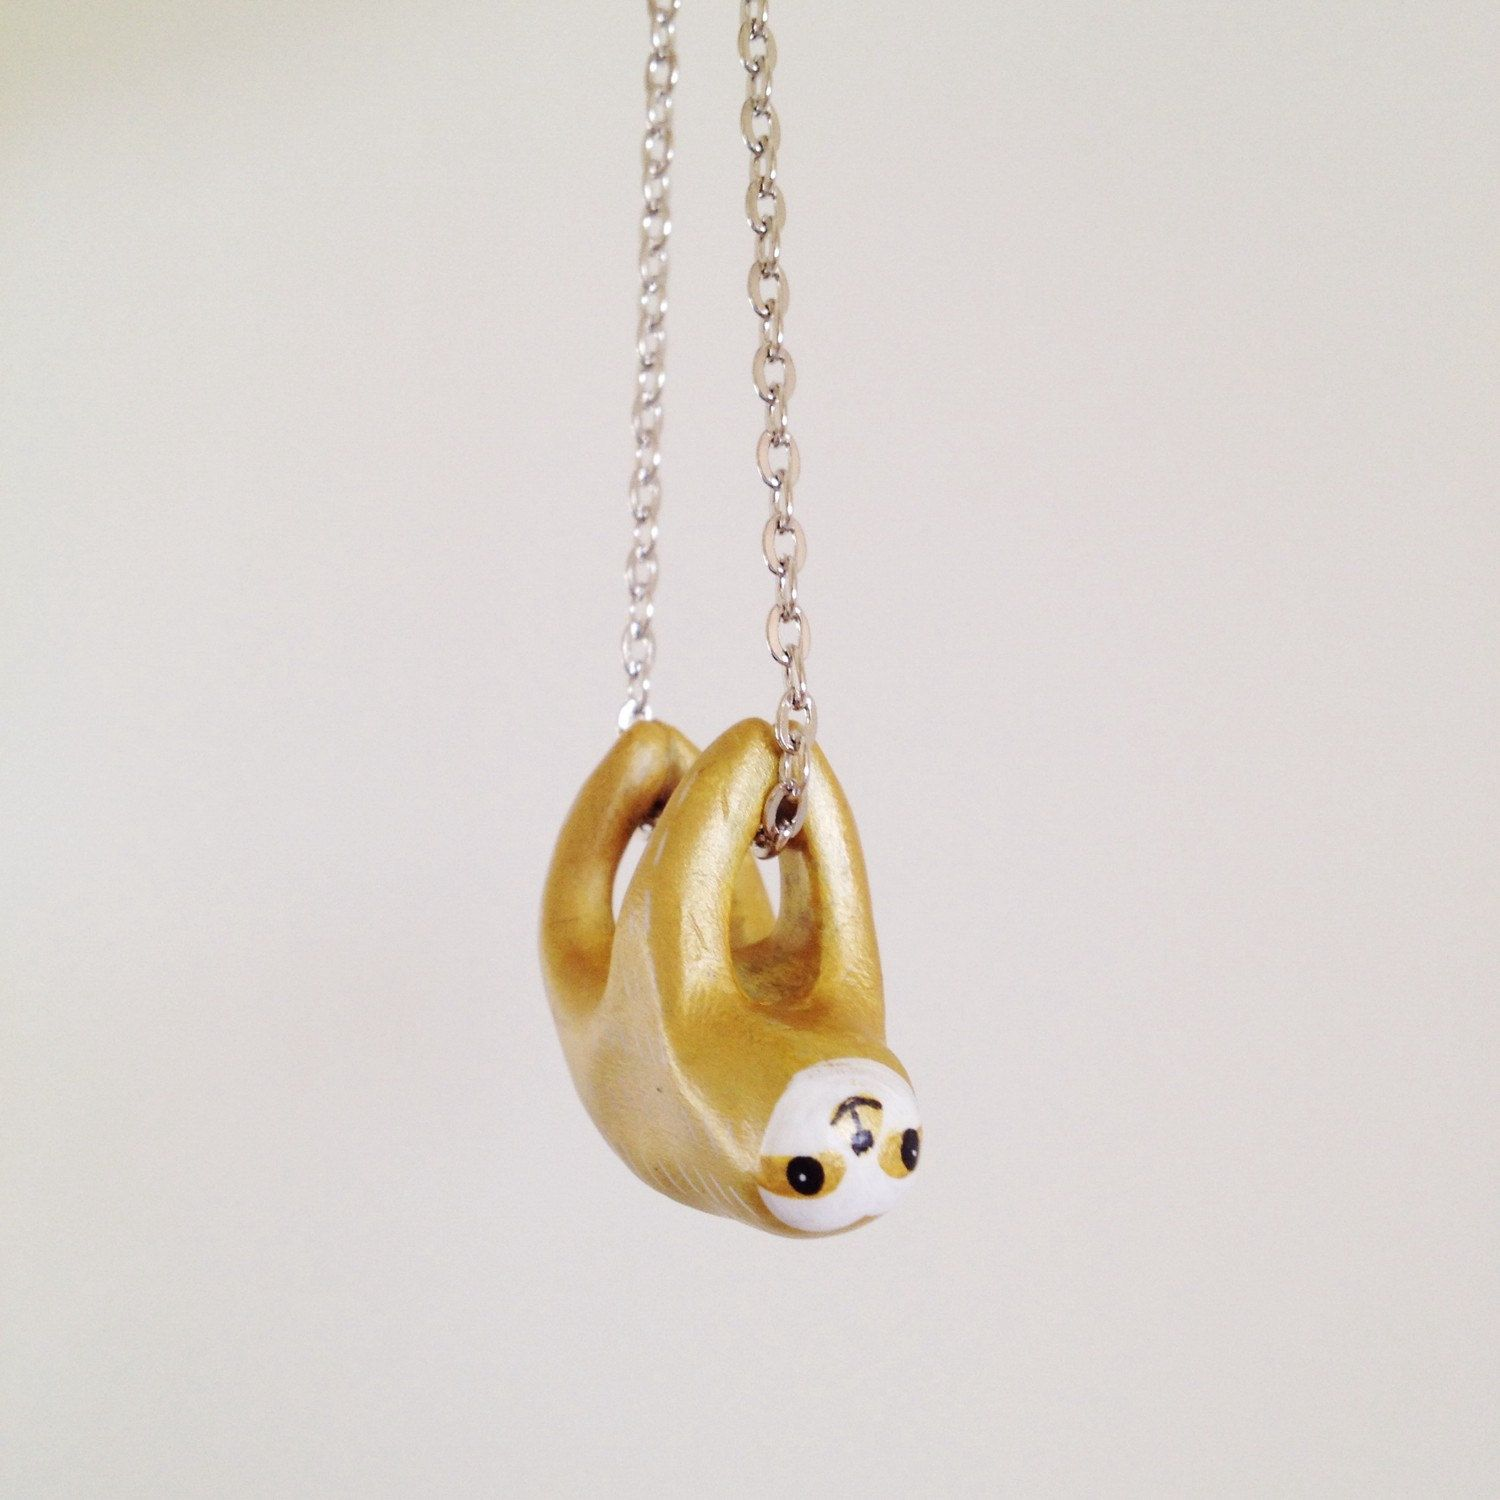 product necklace plated cast sloth pendant out gold products image social